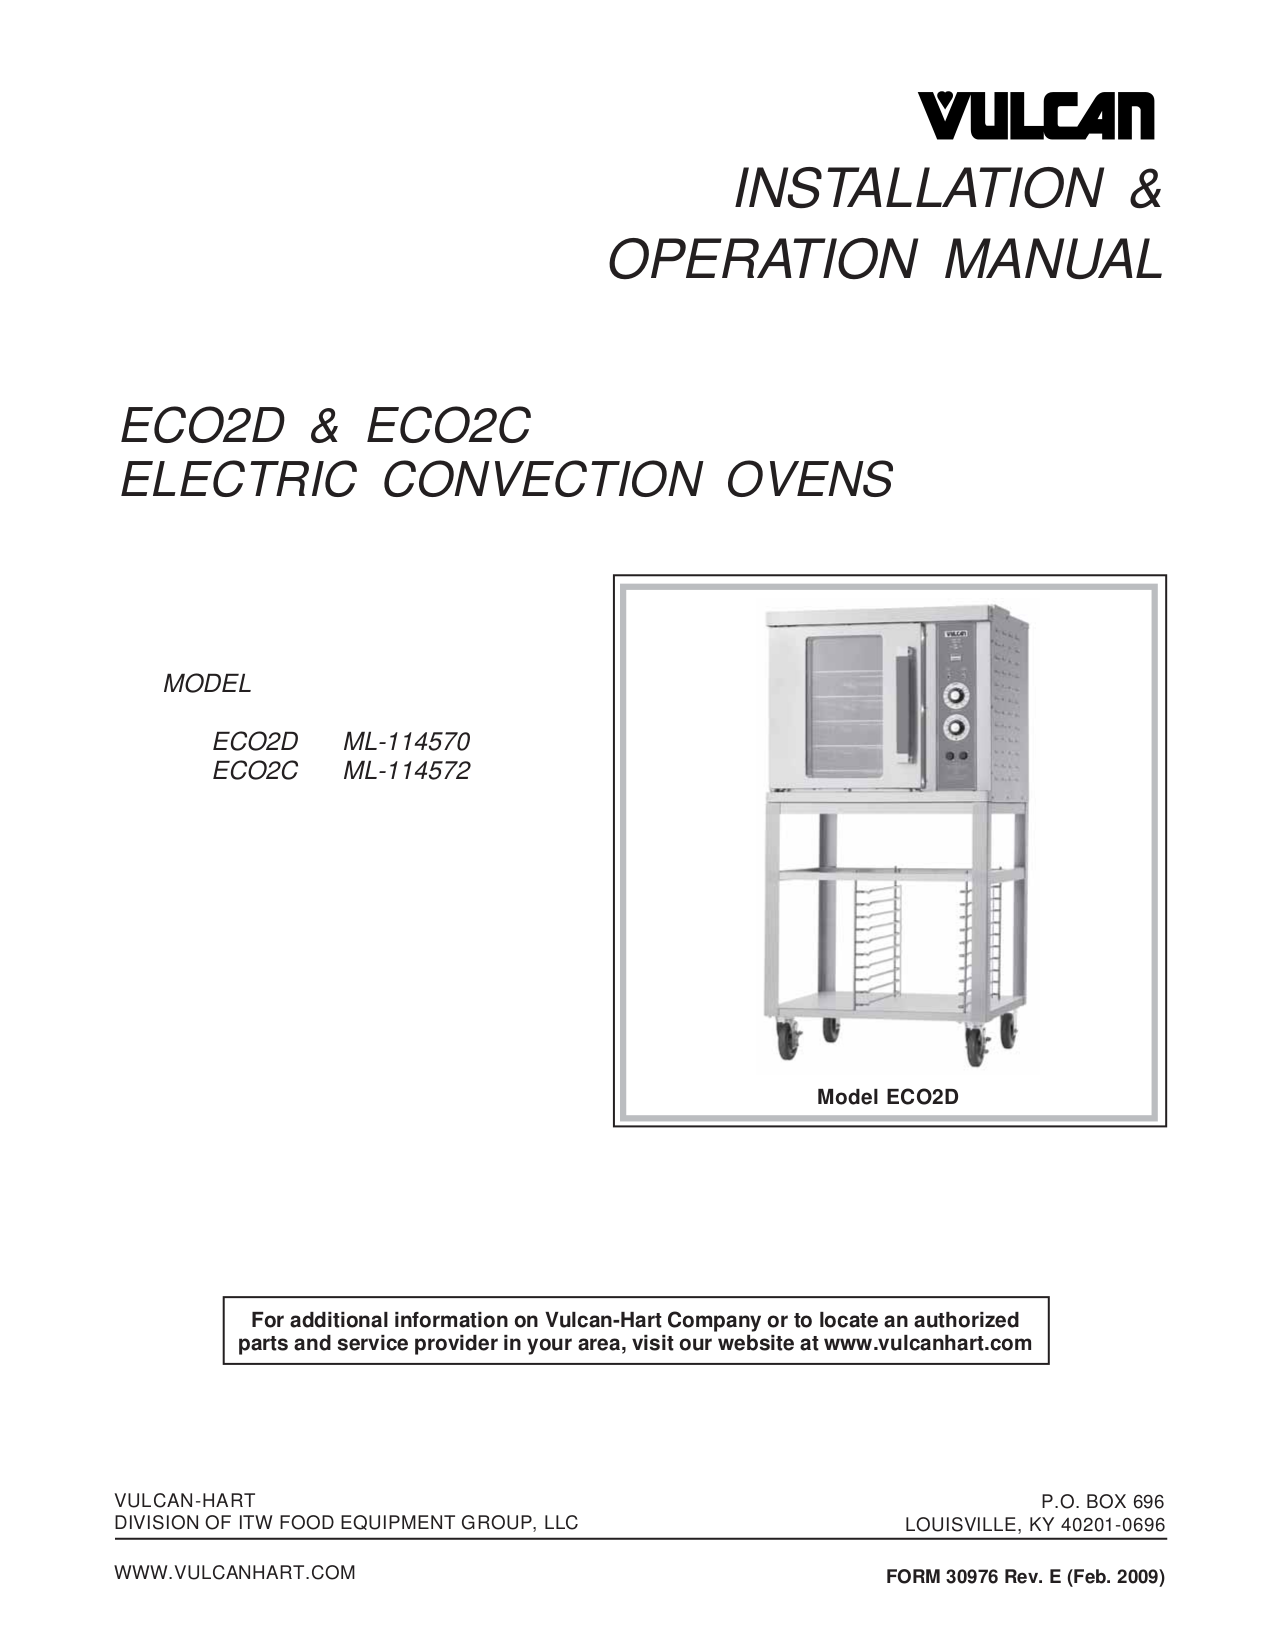 pdf for Vulcan Oven ECO2C manual